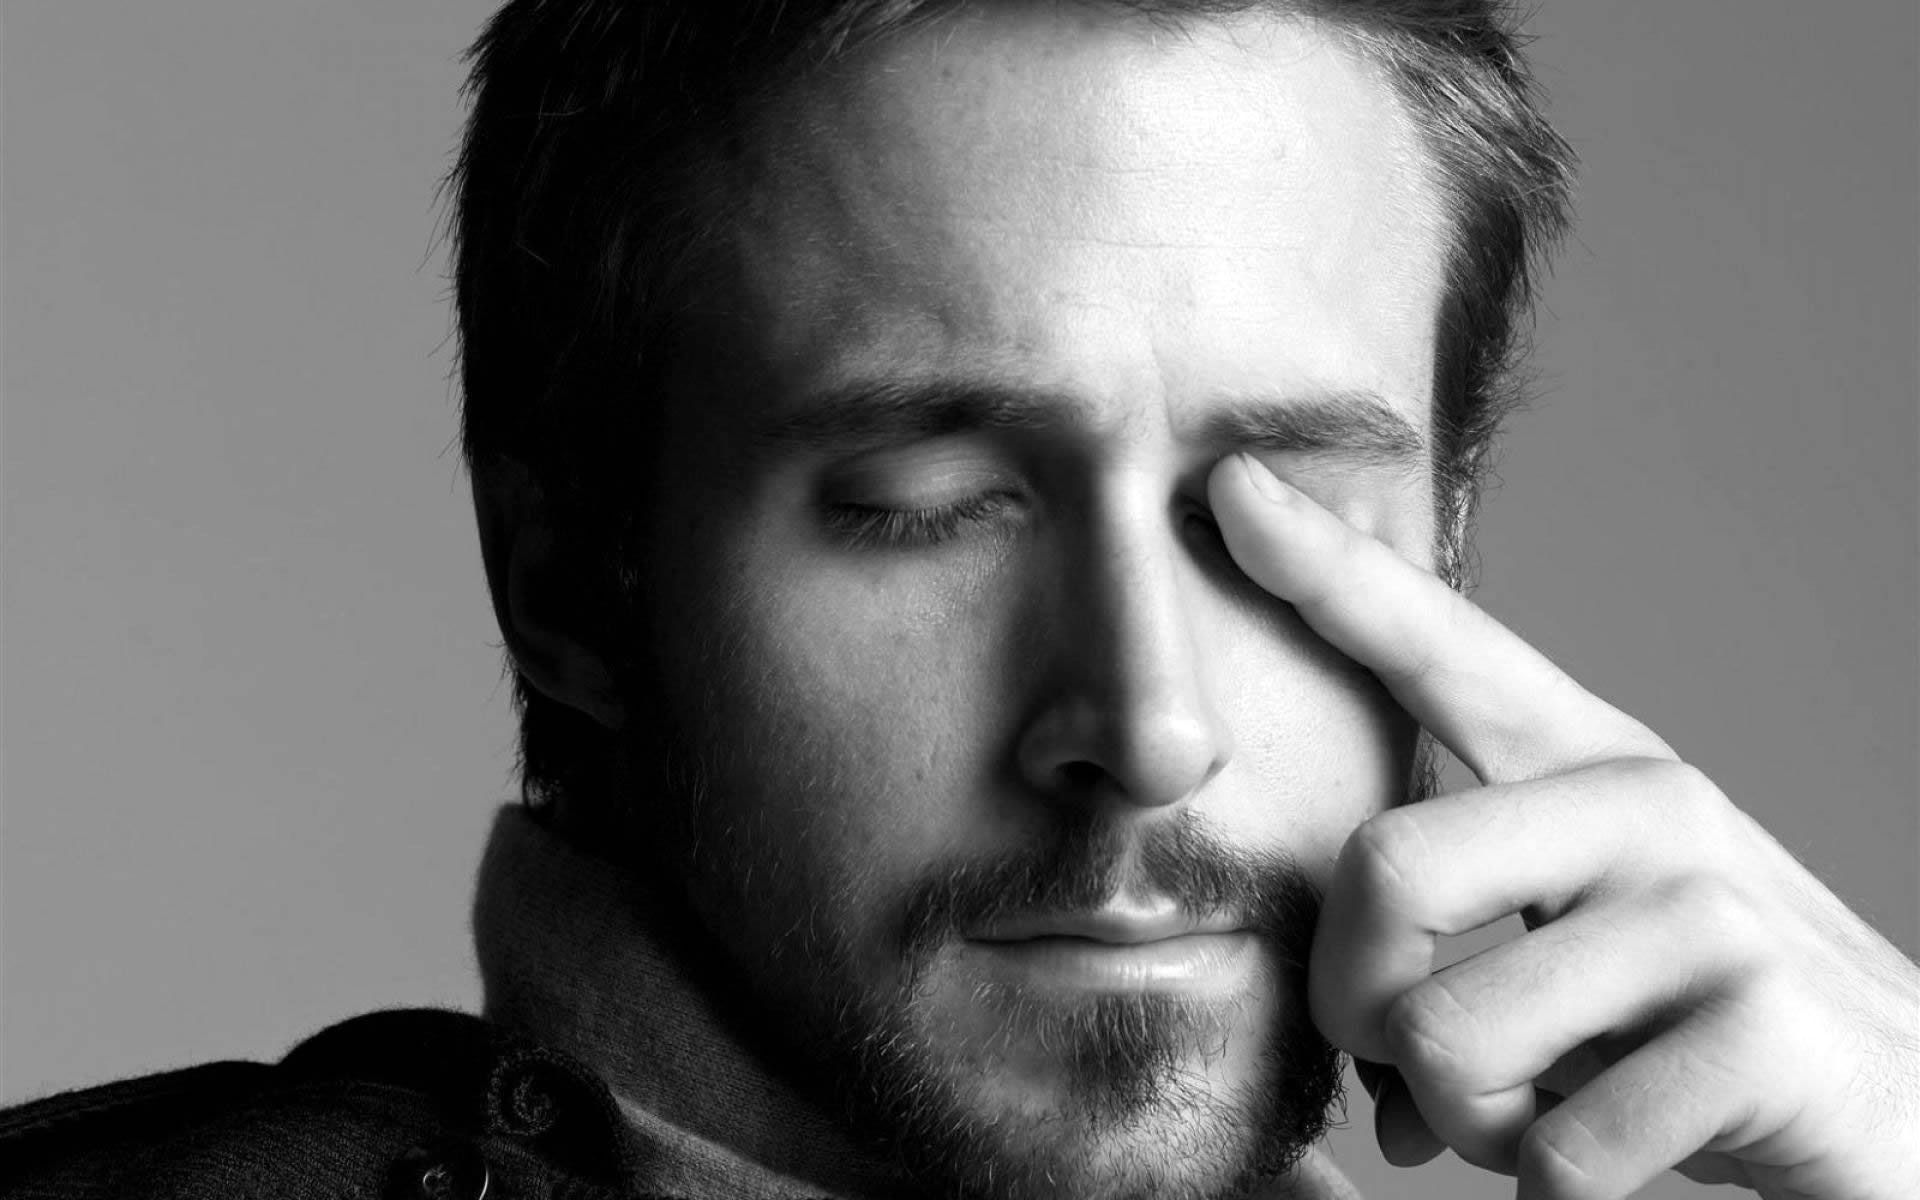 Ryan Gosling Wallpapers   Wallpaper High Definition High Quality 1920x1200